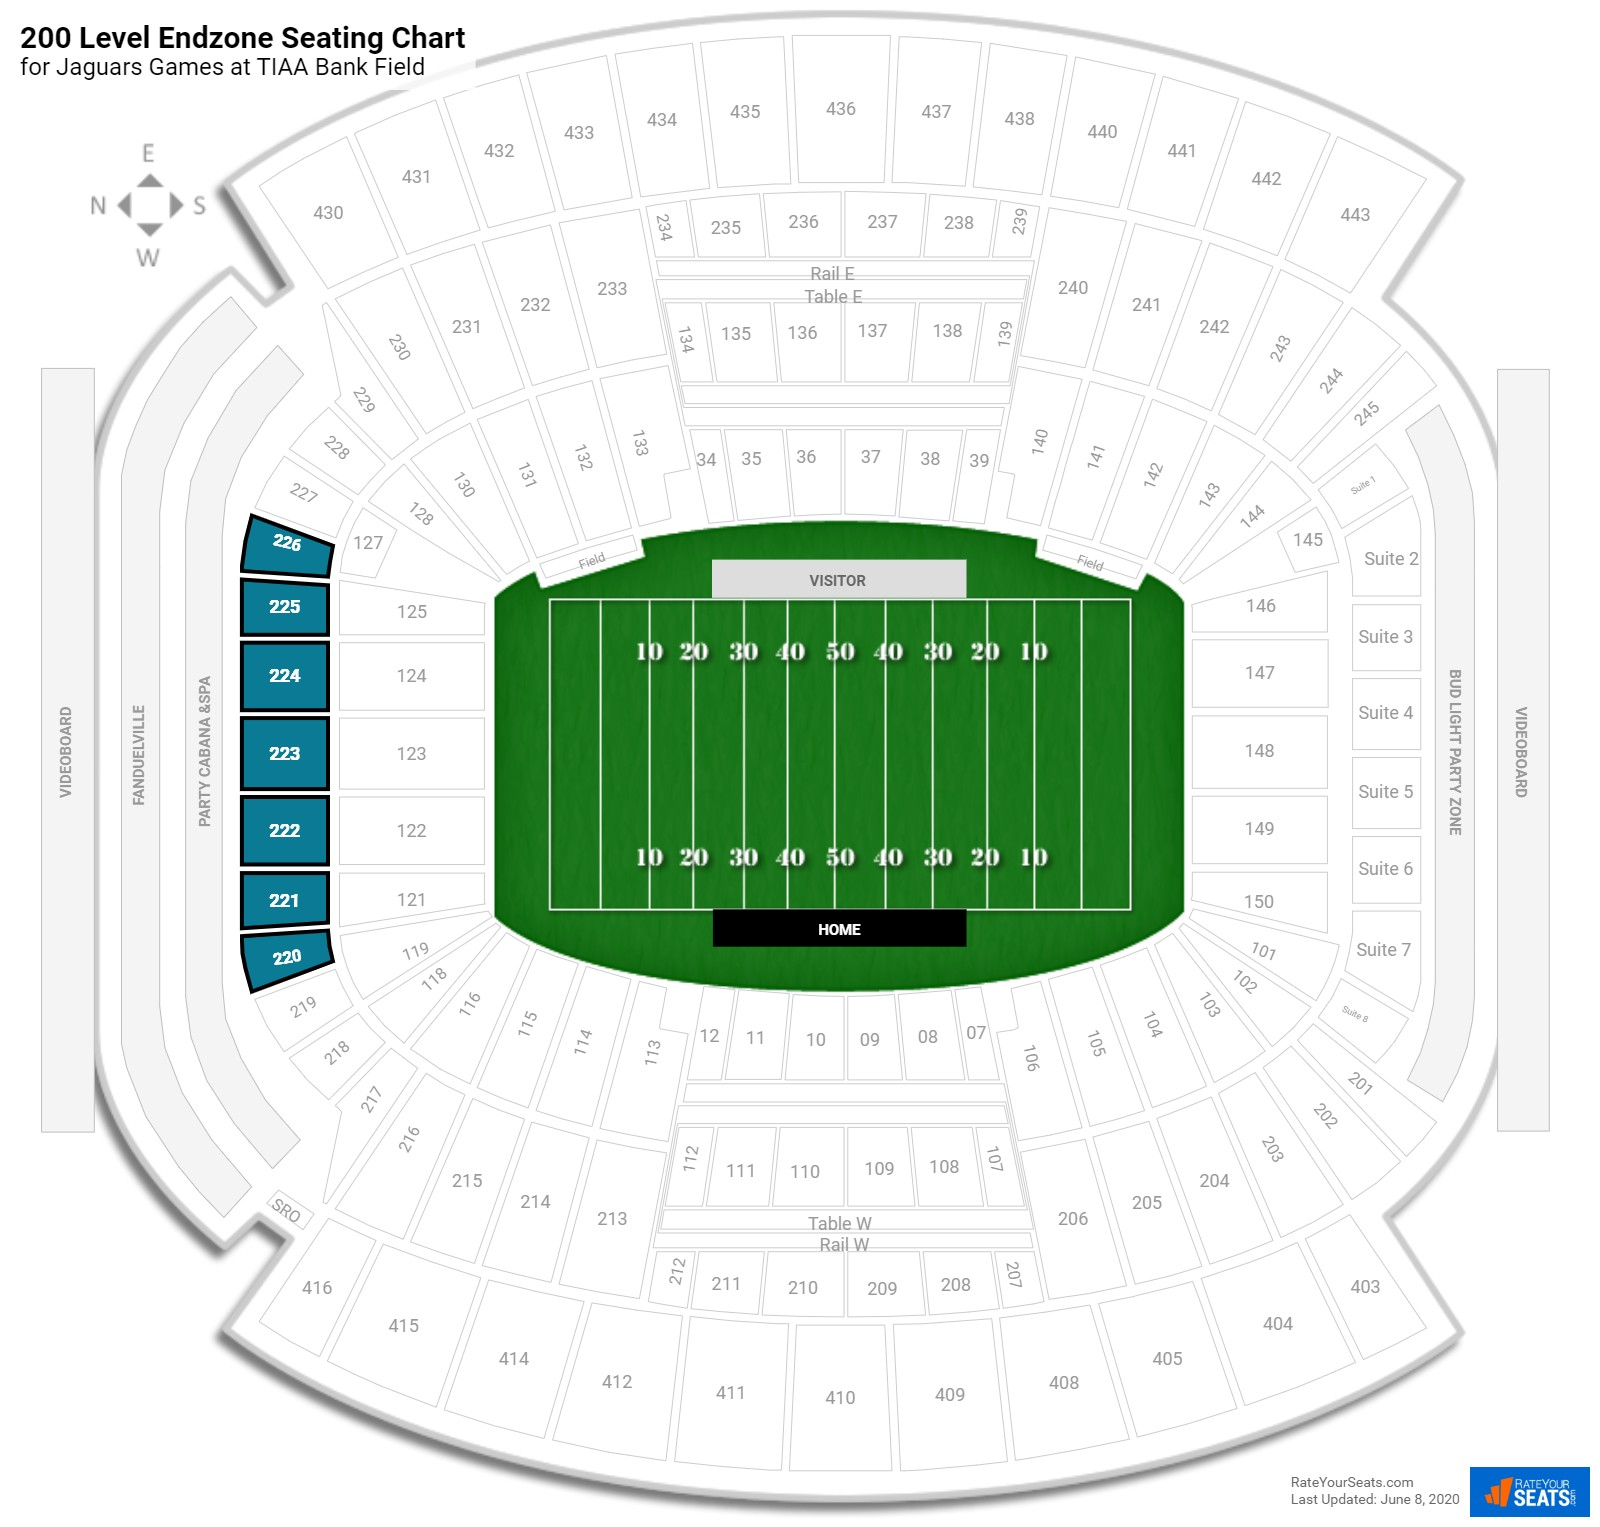 EverBank Field 200 Level Endzone seating chart